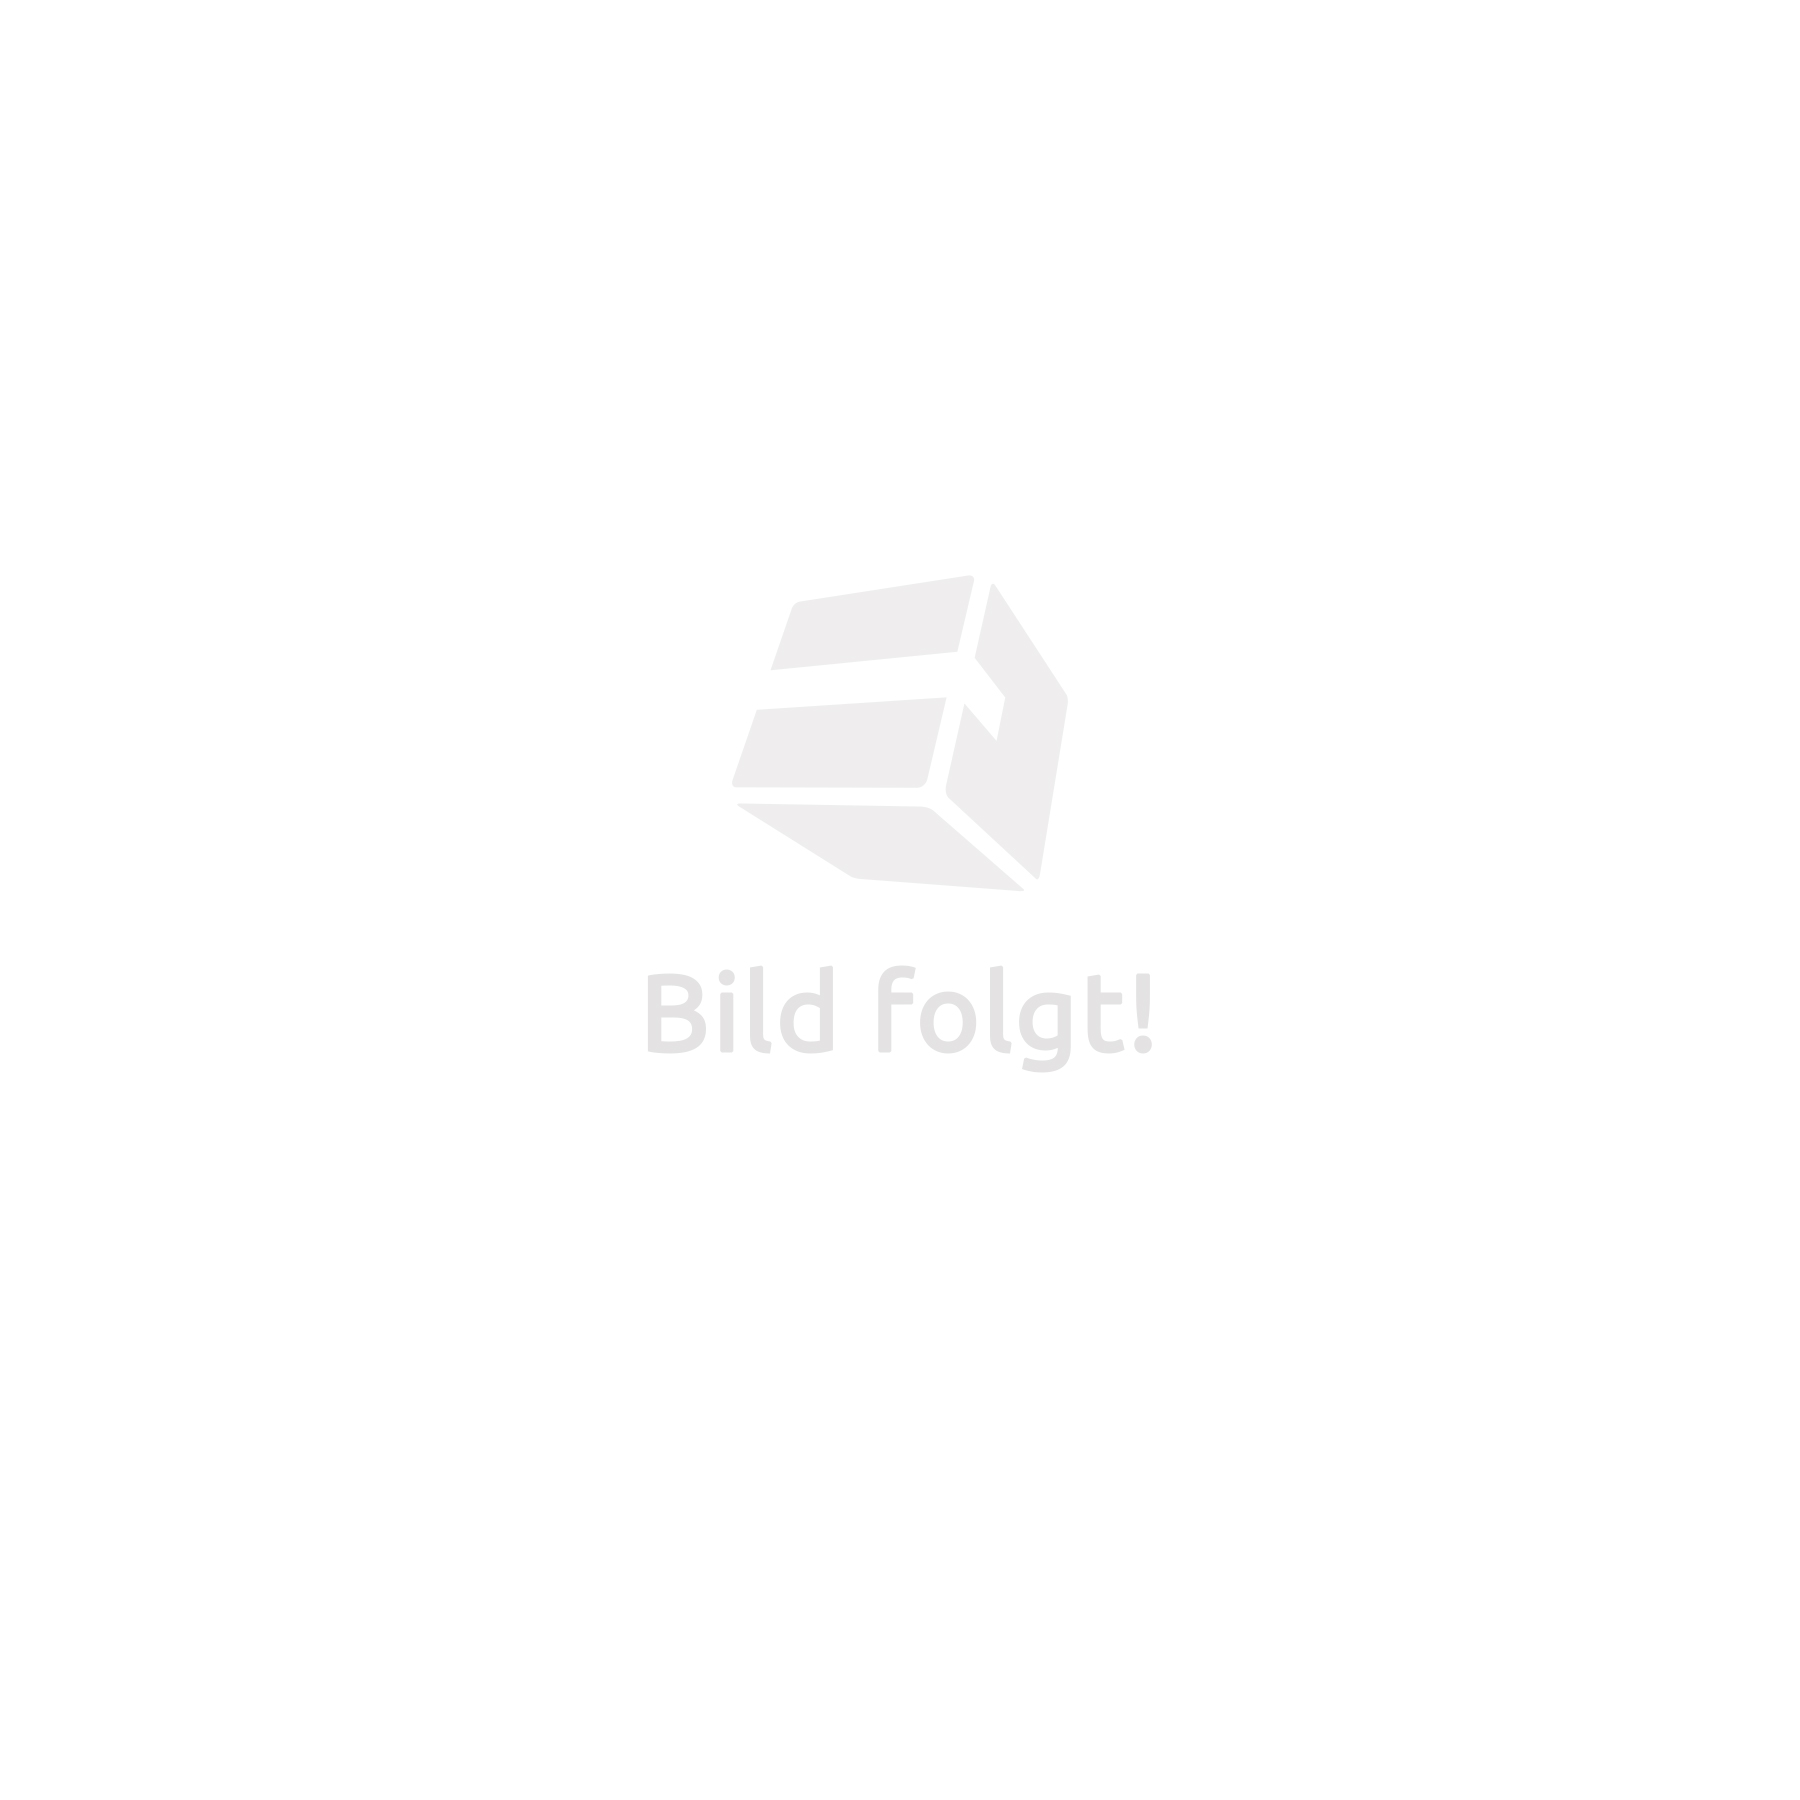 Laundry basket with 4 compartments